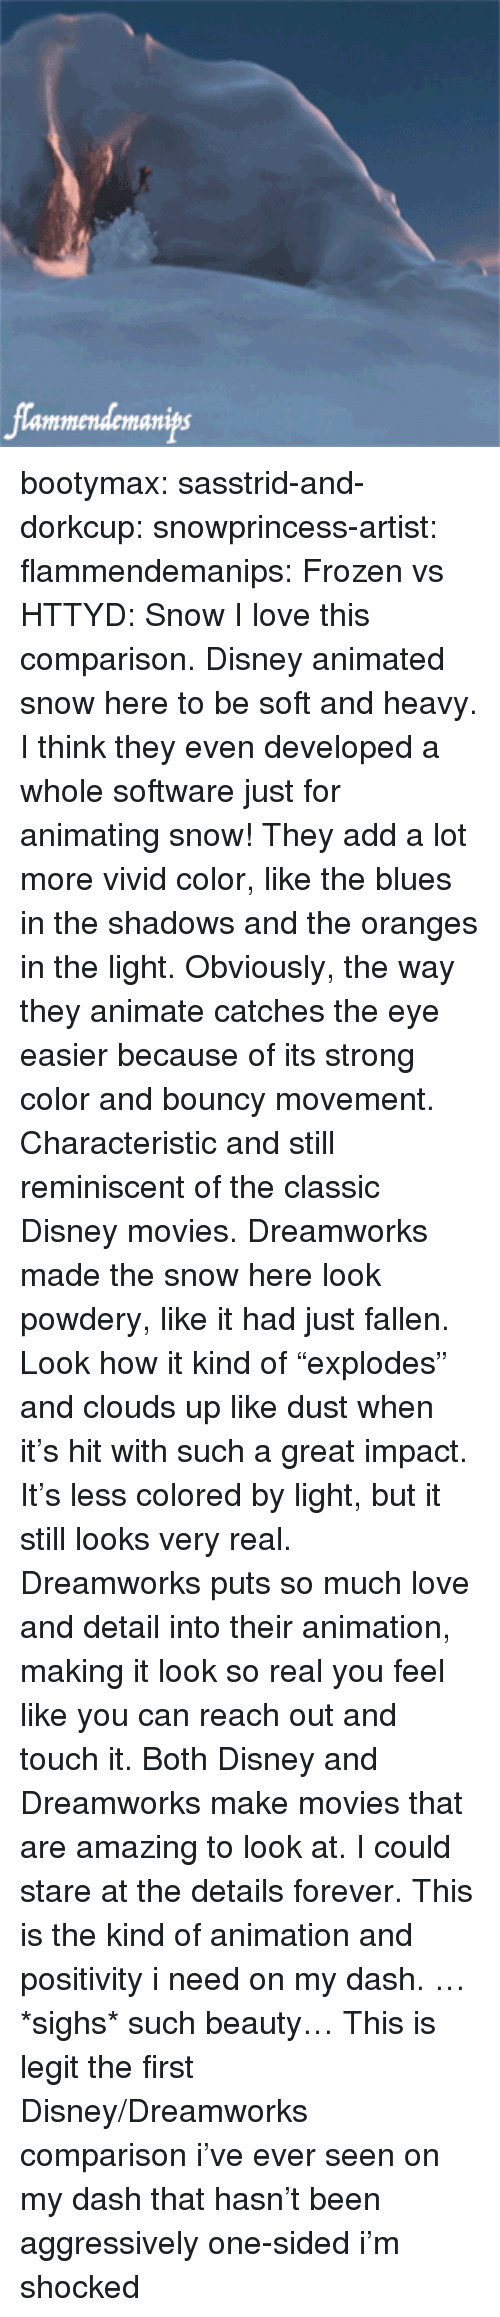 """Disney, Frozen, and Love: lammendemanips bootymax: sasstrid-and-dorkcup:  snowprincess-artist:  flammendemanips:   Frozen vs HTTYD: Snow   I love this comparison. Disney animated snow here to be soft and heavy. I think they even developed a whole software just for animating snow! They add a lot more vivid color, like the blues in the shadows and the oranges in the light. Obviously, the way they animate catches the eye easier because of its strong color and bouncy movement. Characteristic and still reminiscent of the classic Disney movies. Dreamworks made the snow here look powdery, like it had just fallen. Look how it kind of """"explodes"""" and clouds up like dust when  it's hit with such a great impact. It's less colored by light, but it still looks very real. Dreamworks puts so much love and detail into their animation, making it look so real you feel like you can reach out and touch it.  Both Disney and Dreamworks make movies that are amazing to look at. I could stare at the details forever.  This is the kind of animation and positivity i need on my dash. …*sighs* such beauty…   This is legit the first Disney/Dreamworks comparison i've ever seen on my dash that hasn't been aggressively one-sided i'm shocked"""